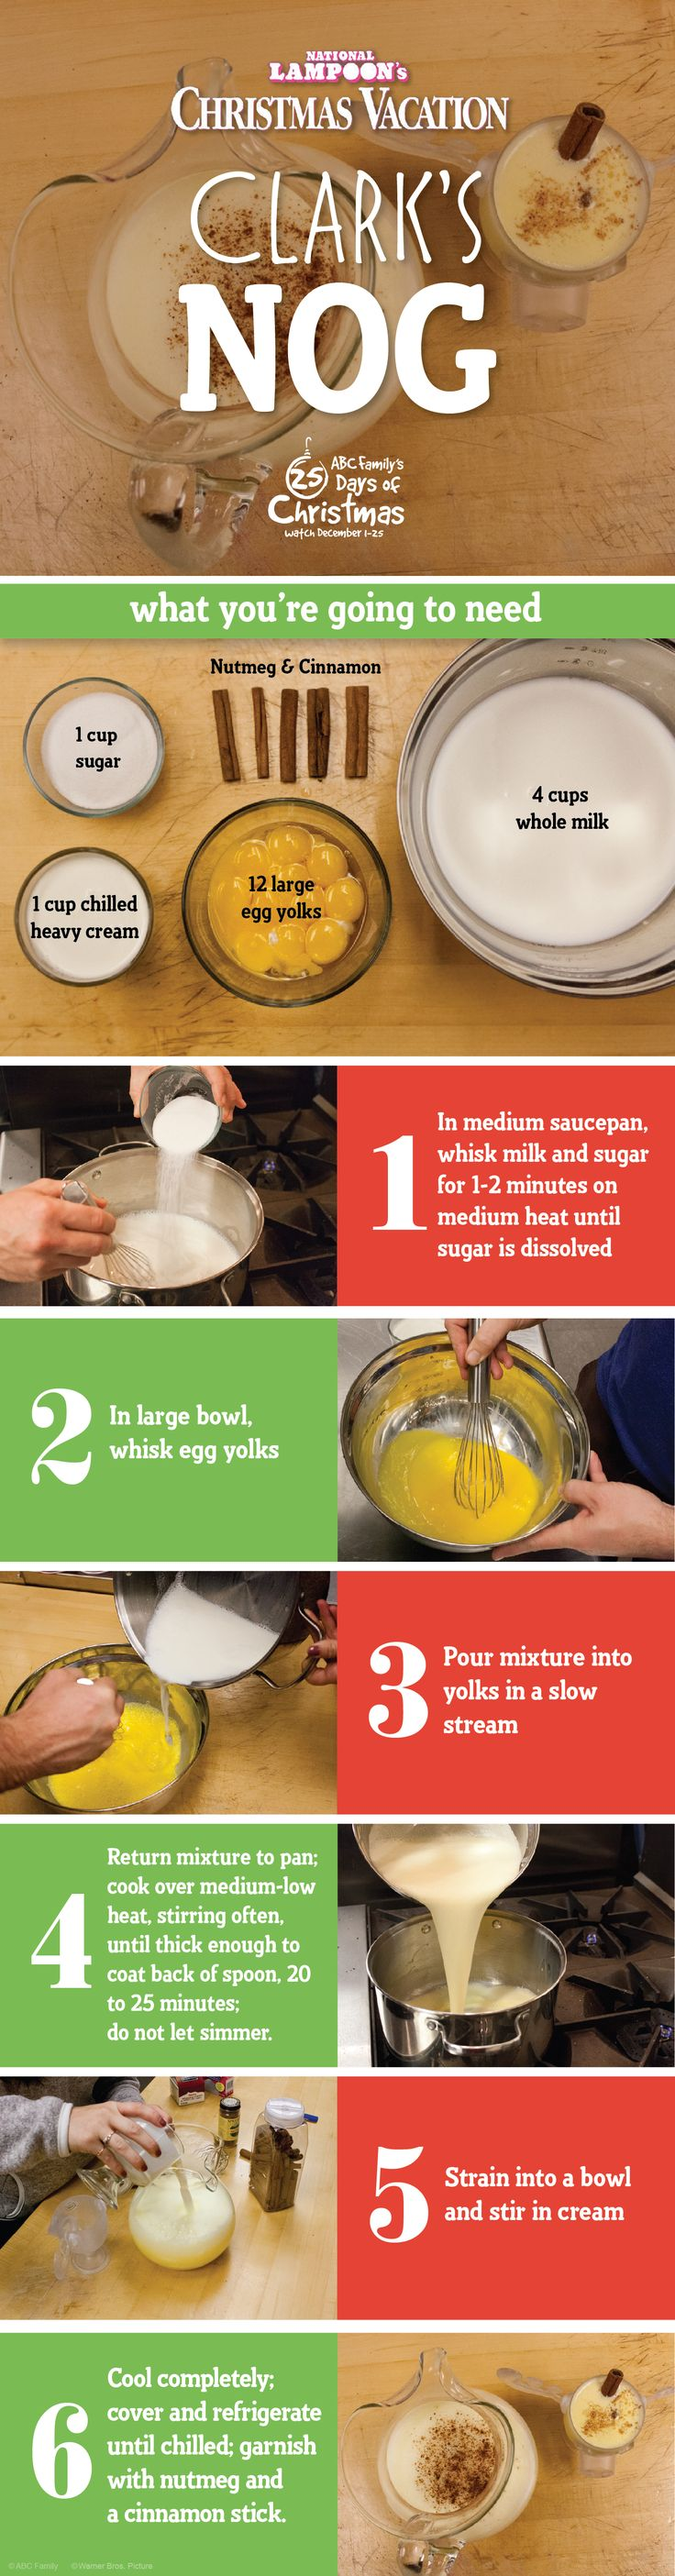 Try this awesome National Lampoon's Christmas Vacation inspired Egg Nog Recipe! | 25 Days of Christmas